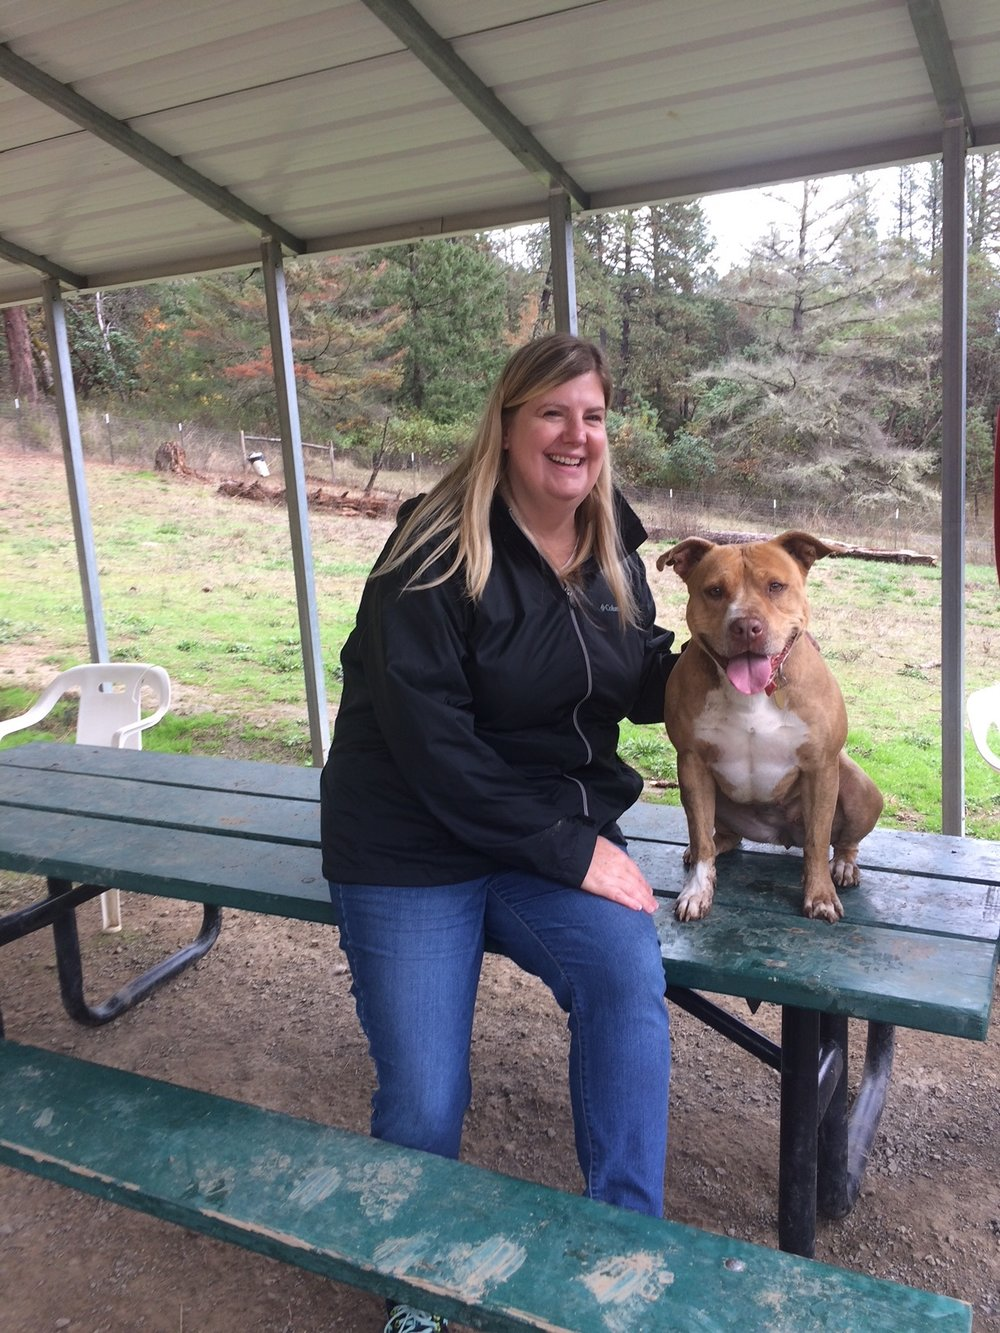 After waiting for over two years at the Del Norte County Animal Control shelter, Jane is ready to go home with her new mom.